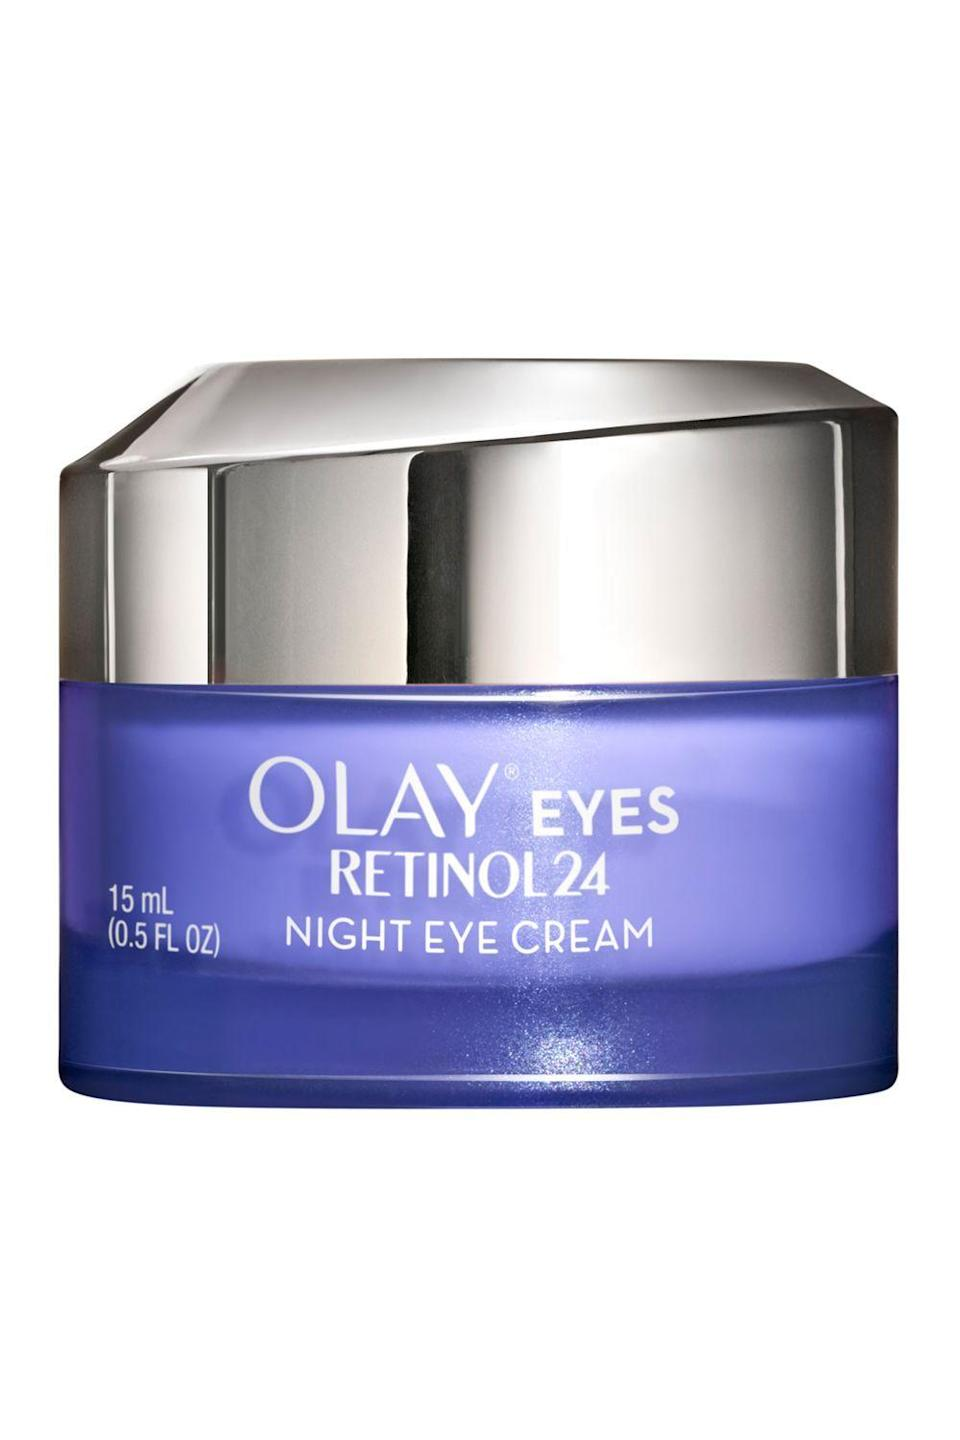 """<p><strong>Olay</strong></p><p>target.com</p><p><strong>$28.99</strong></p><p><a href=""""https://www.target.com/p/olay-eyes-retinol24-night-eye-cream-0-5-fl-oz/-/A-76542749"""" rel=""""nofollow noopener"""" target=""""_blank"""" data-ylk=""""slk:Shop Now"""" class=""""link rapid-noclick-resp"""">Shop Now</a></p><p>Remember that thing about certain retinol eye creams being suitable for nighttime only? This is one of them. The silky cream <strong>contains a retinol complex along with two potent antioxidants </strong>(vitamin B3 and <a href=""""https://www.cosmopolitan.com/style-beauty/beauty/a27609307/vitamin-e-for-skin-benefits-products/"""" rel=""""nofollow noopener"""" target=""""_blank"""" data-ylk=""""slk:vitamin E"""" class=""""link rapid-noclick-resp"""">vitamin E</a>) to firm and brighten your skin while you snooze.</p>"""